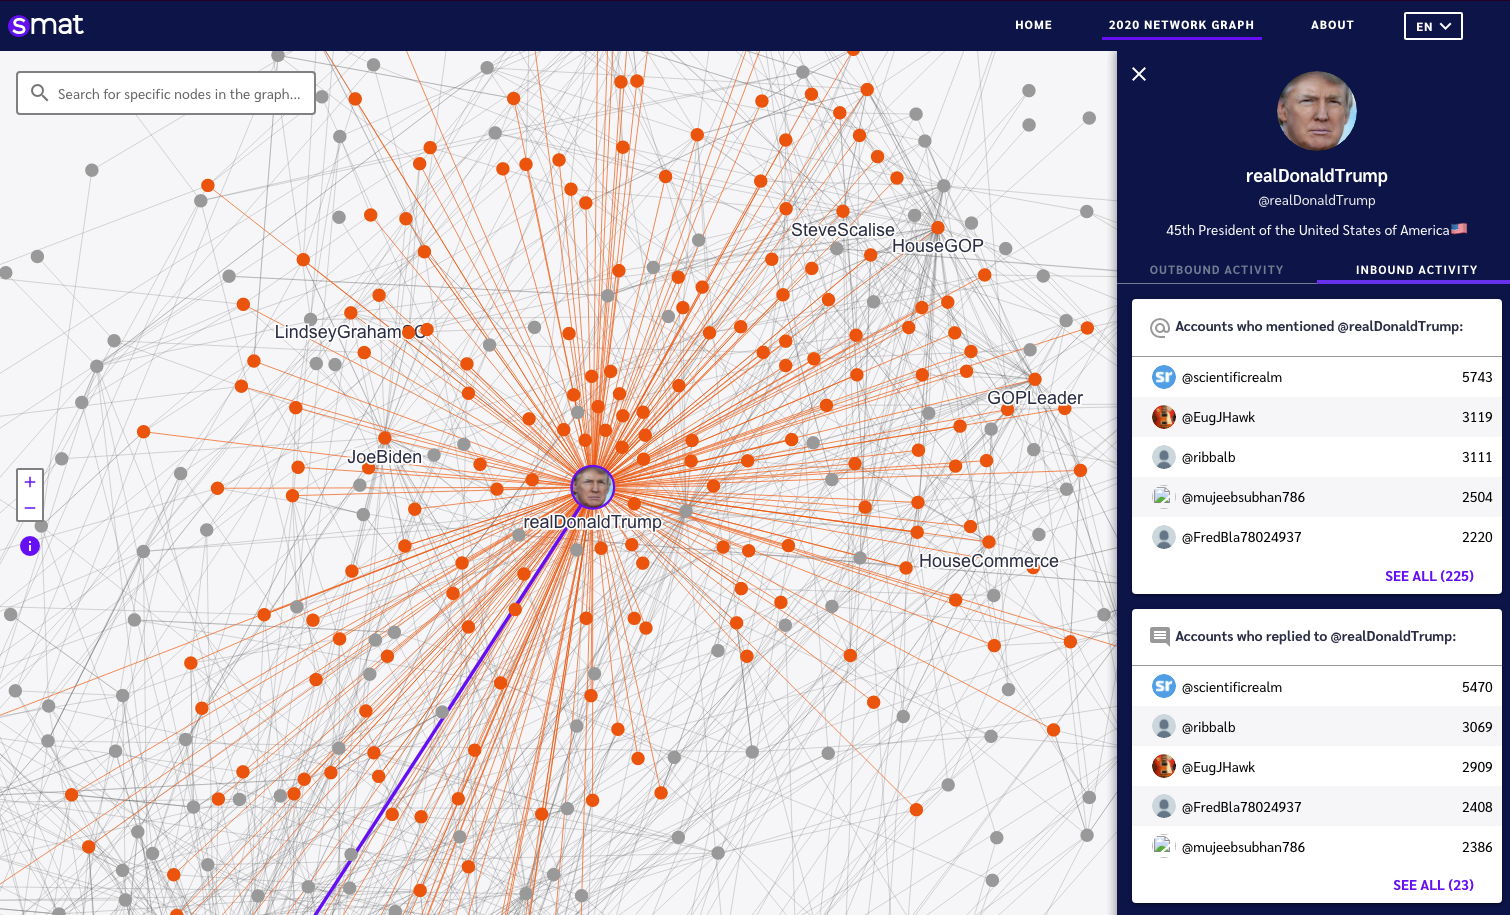 Amidst the election, a new network map analyzes politicians' tweets